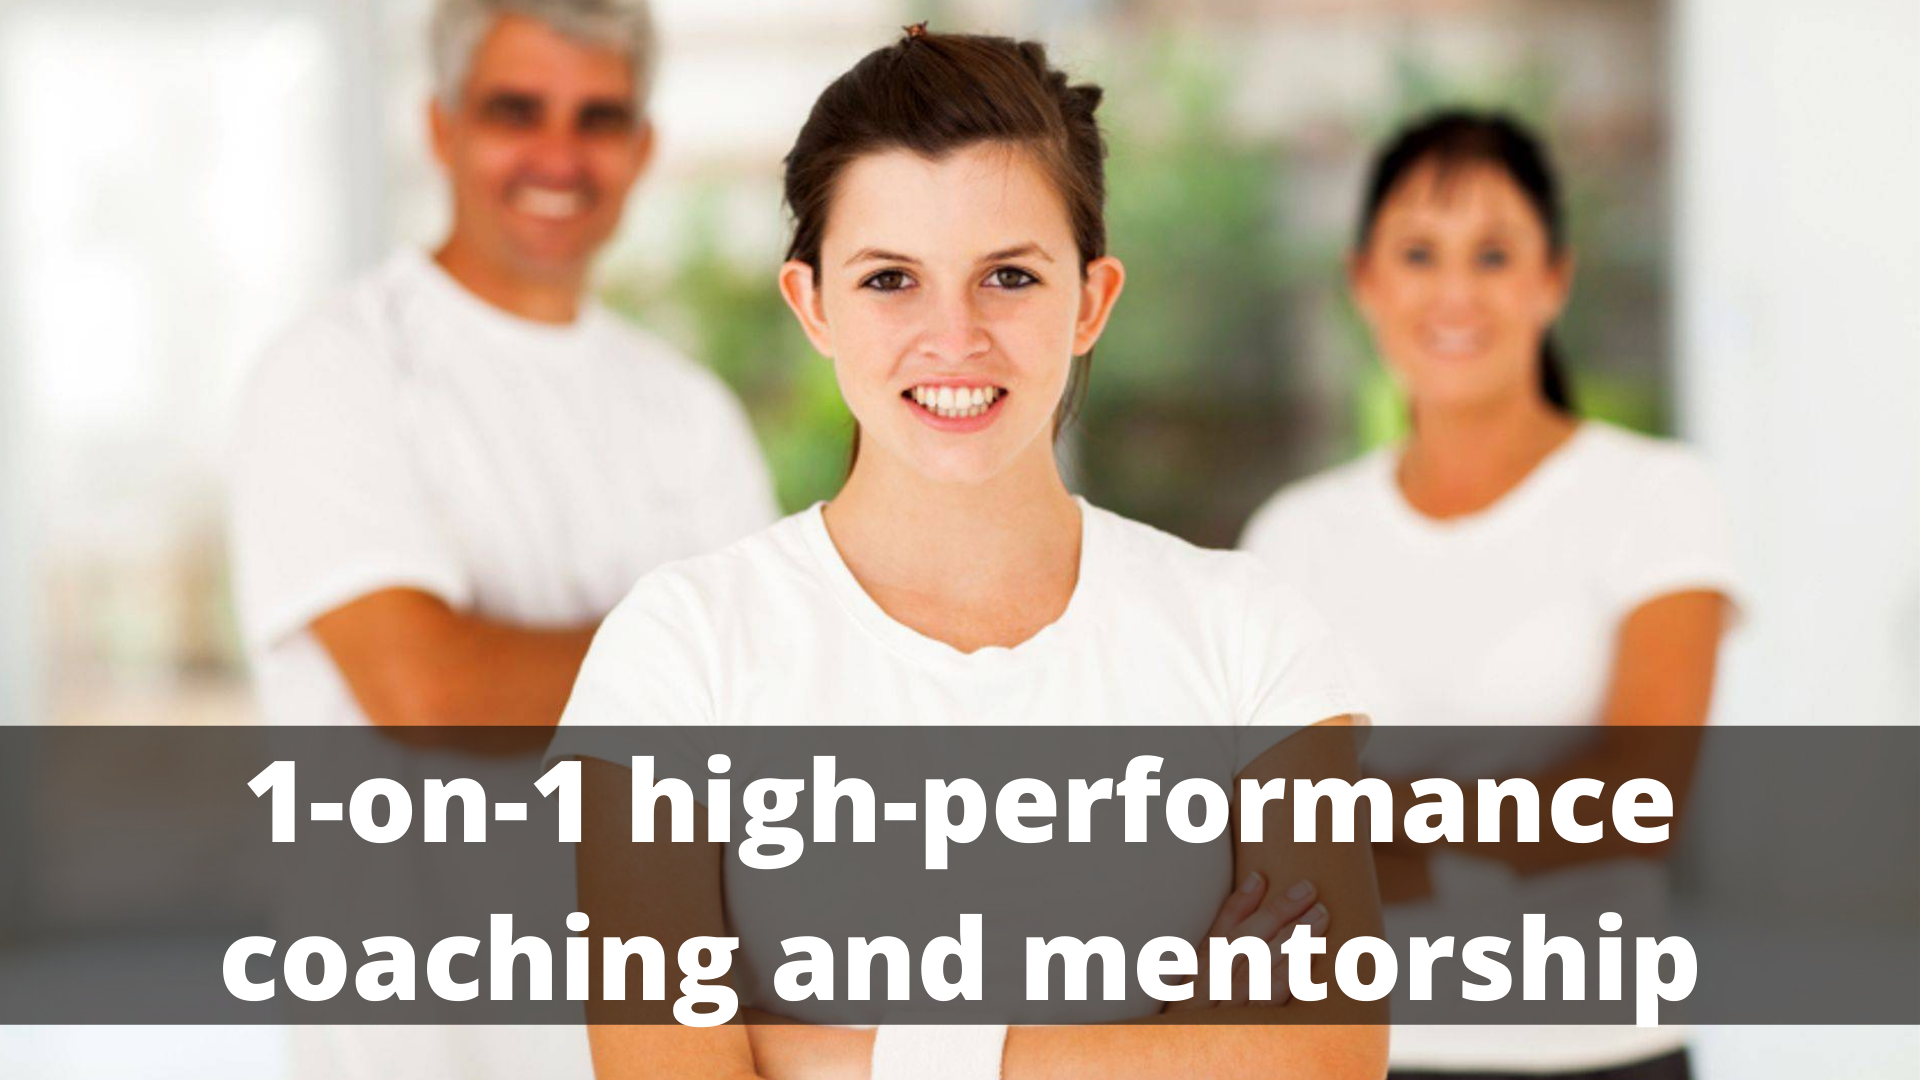 1-on-1 high-performance coaching and mentorship